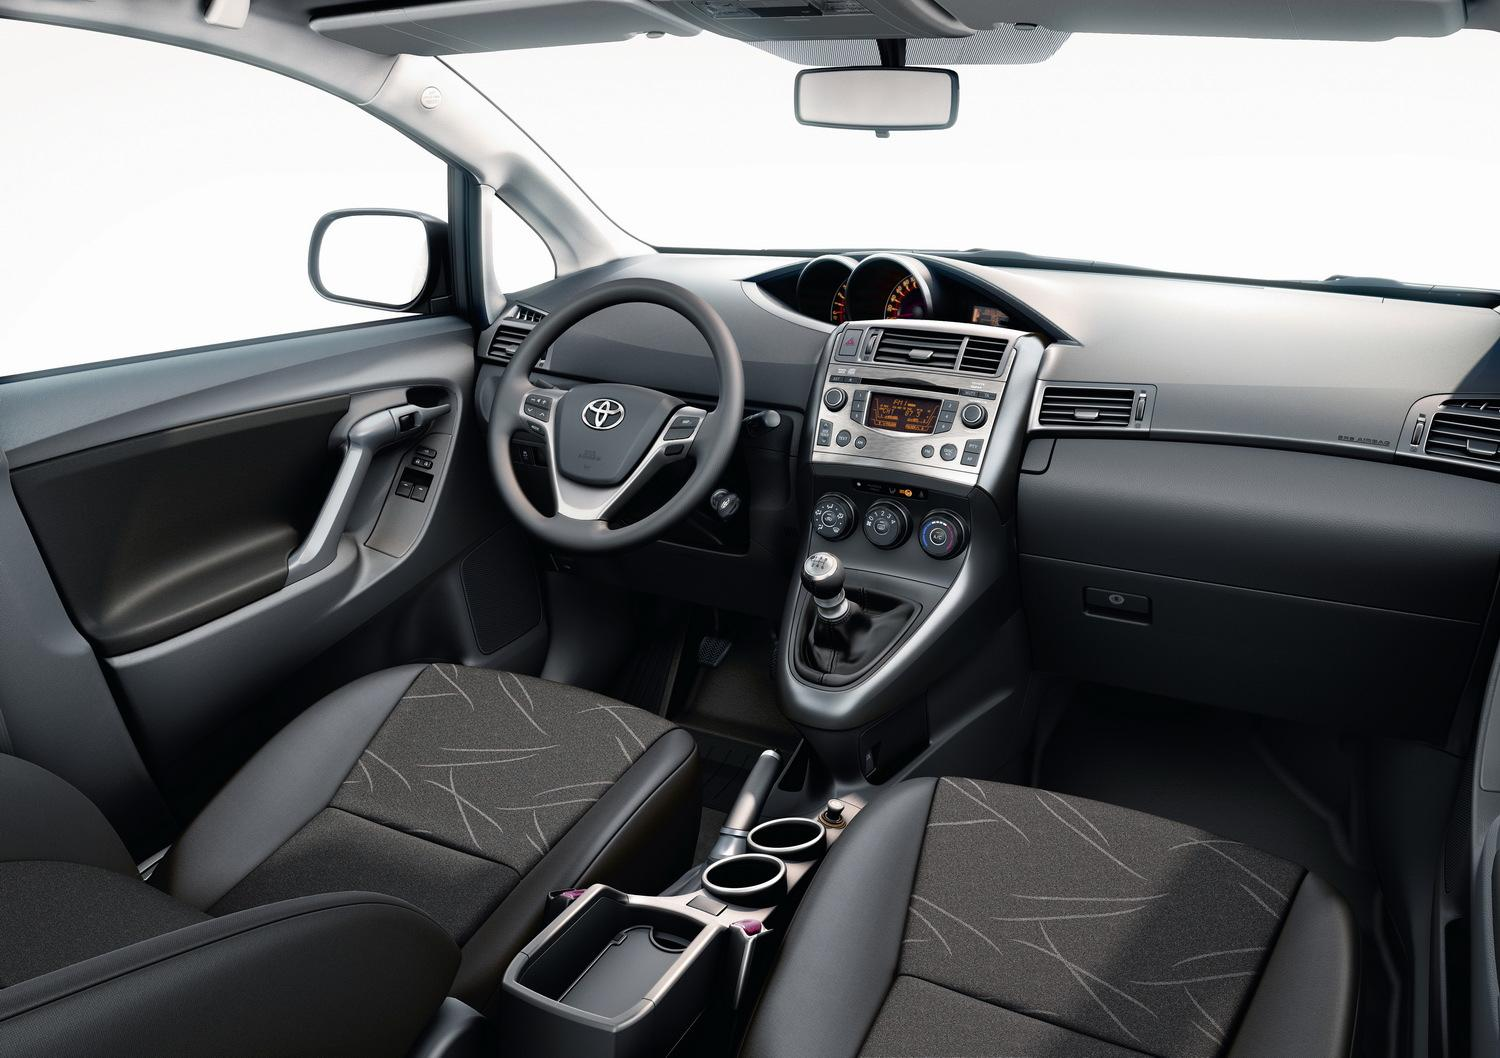 2010 toyota verso interior img 7 it s your auto world new cars auto news reviews photos. Black Bedroom Furniture Sets. Home Design Ideas